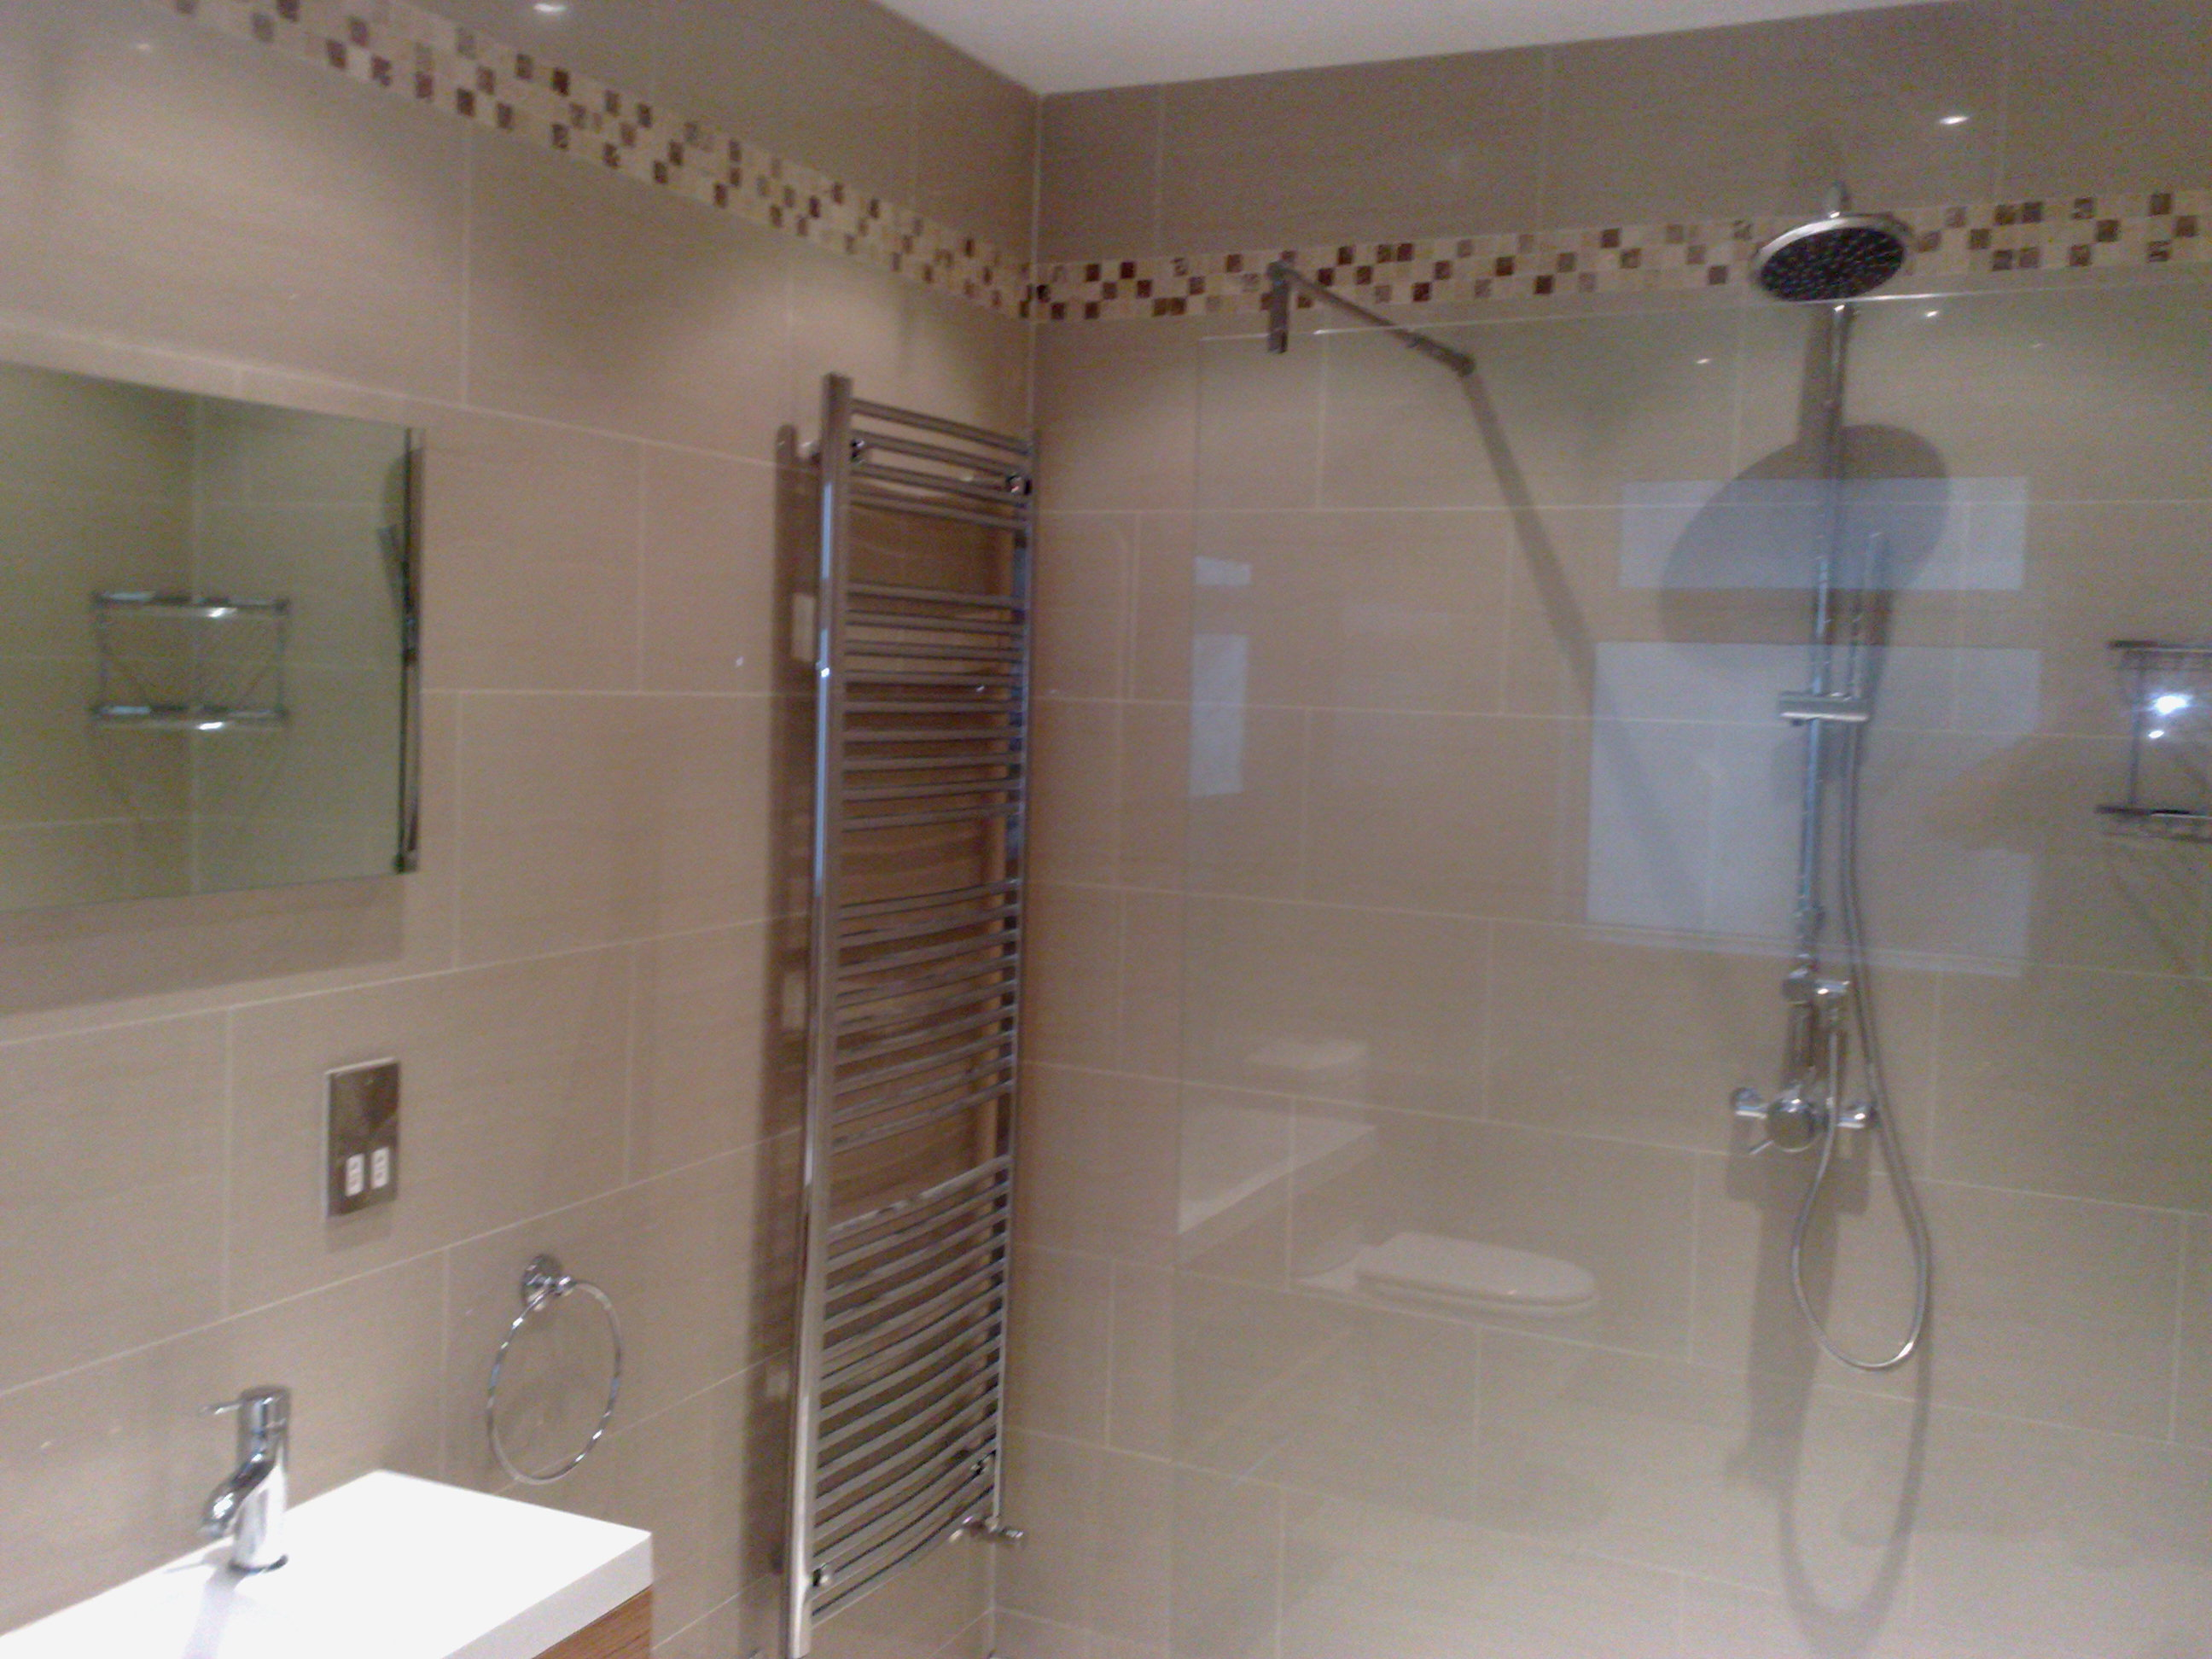 View Pictures And Photos For Kiwi Plumbing Complete Bathroom Service Lt Lt Watch The Video